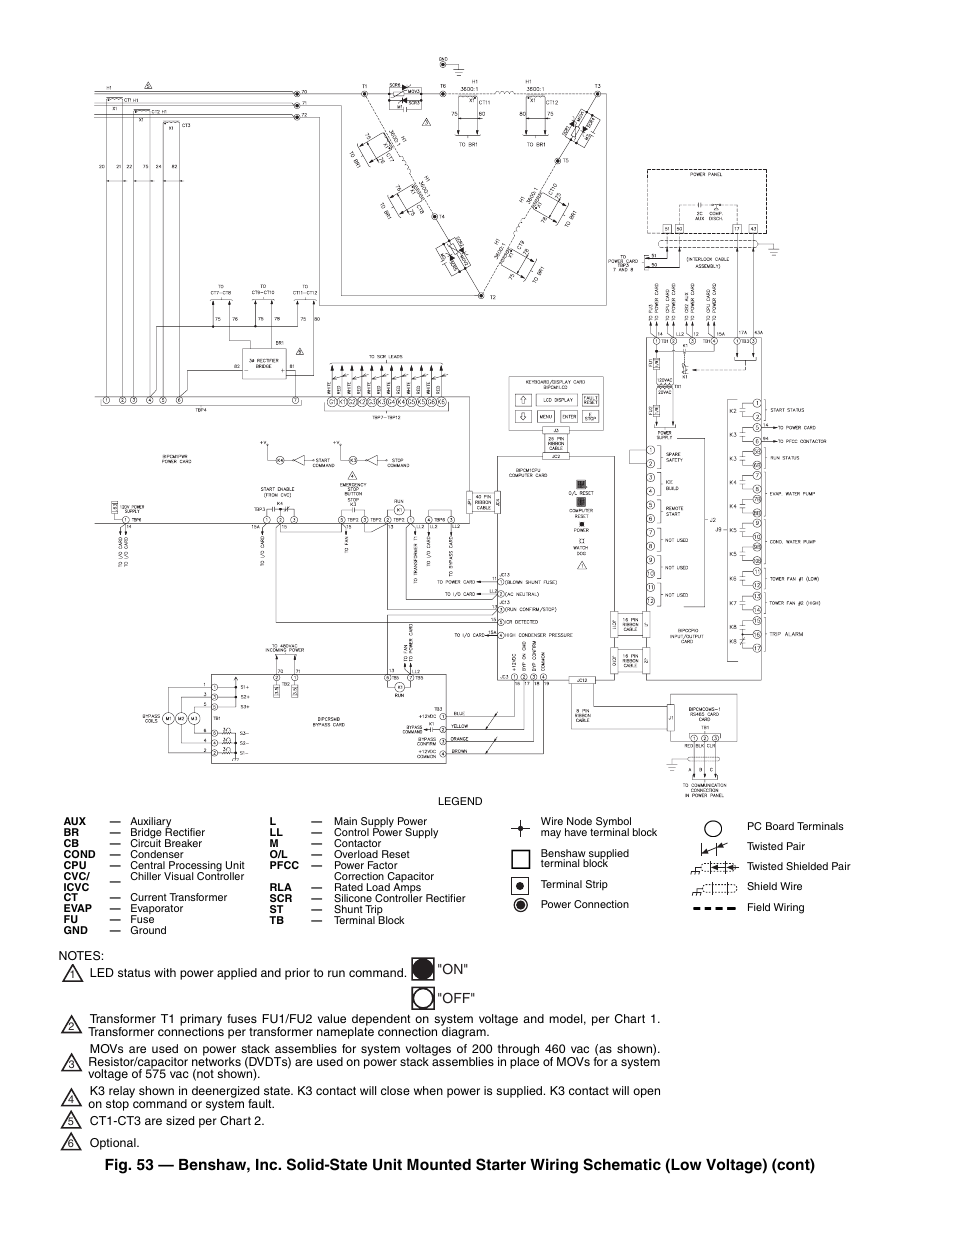 Hx Chiller Wiring Diagram Library Boiler Relay Carrier 30 Gh 4k Wiki Wallpapers 2018